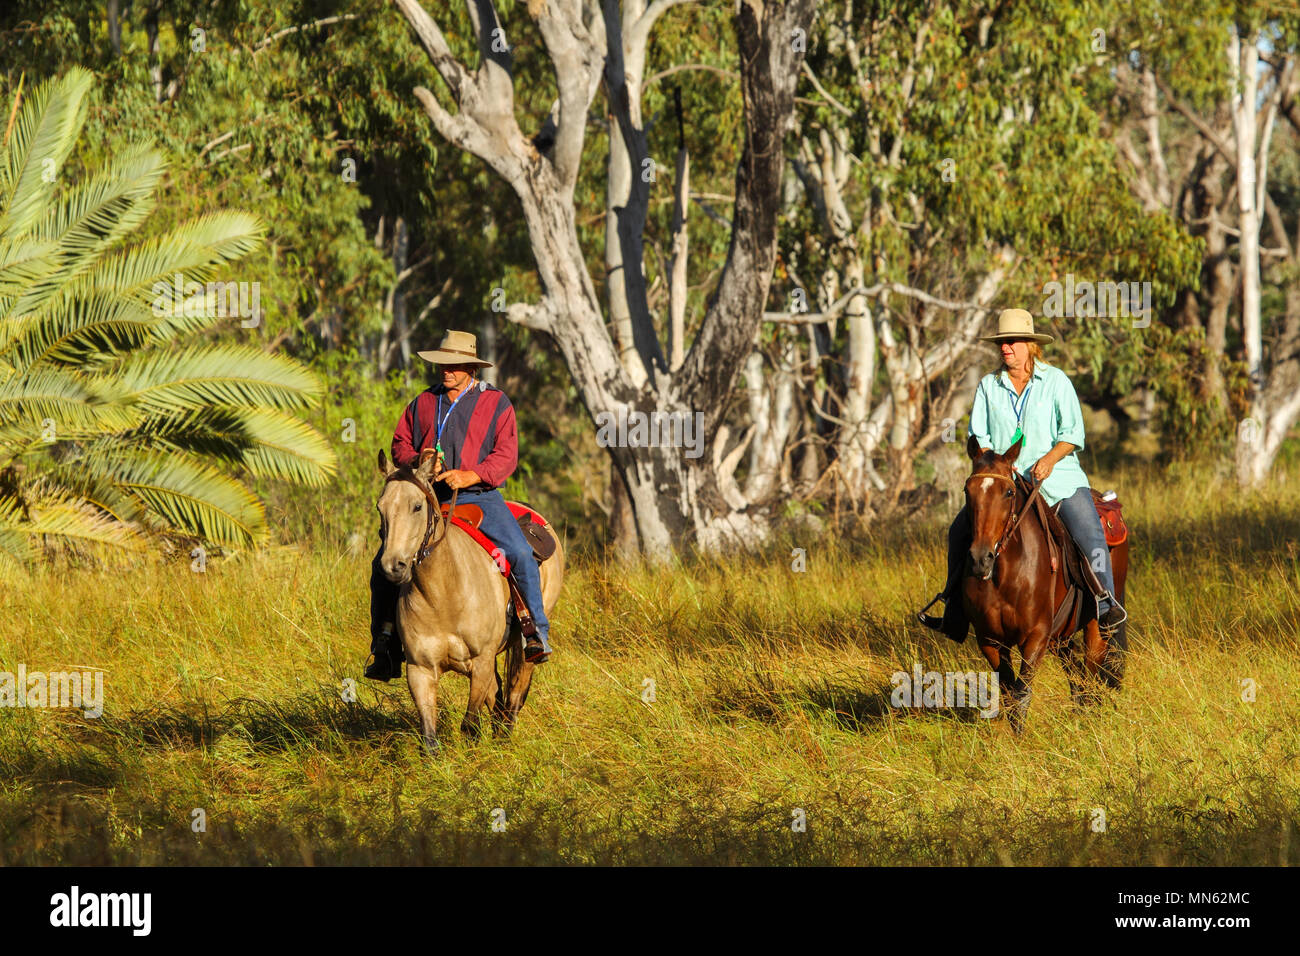 Husband and wife riding horses on a farm. - Stock Image